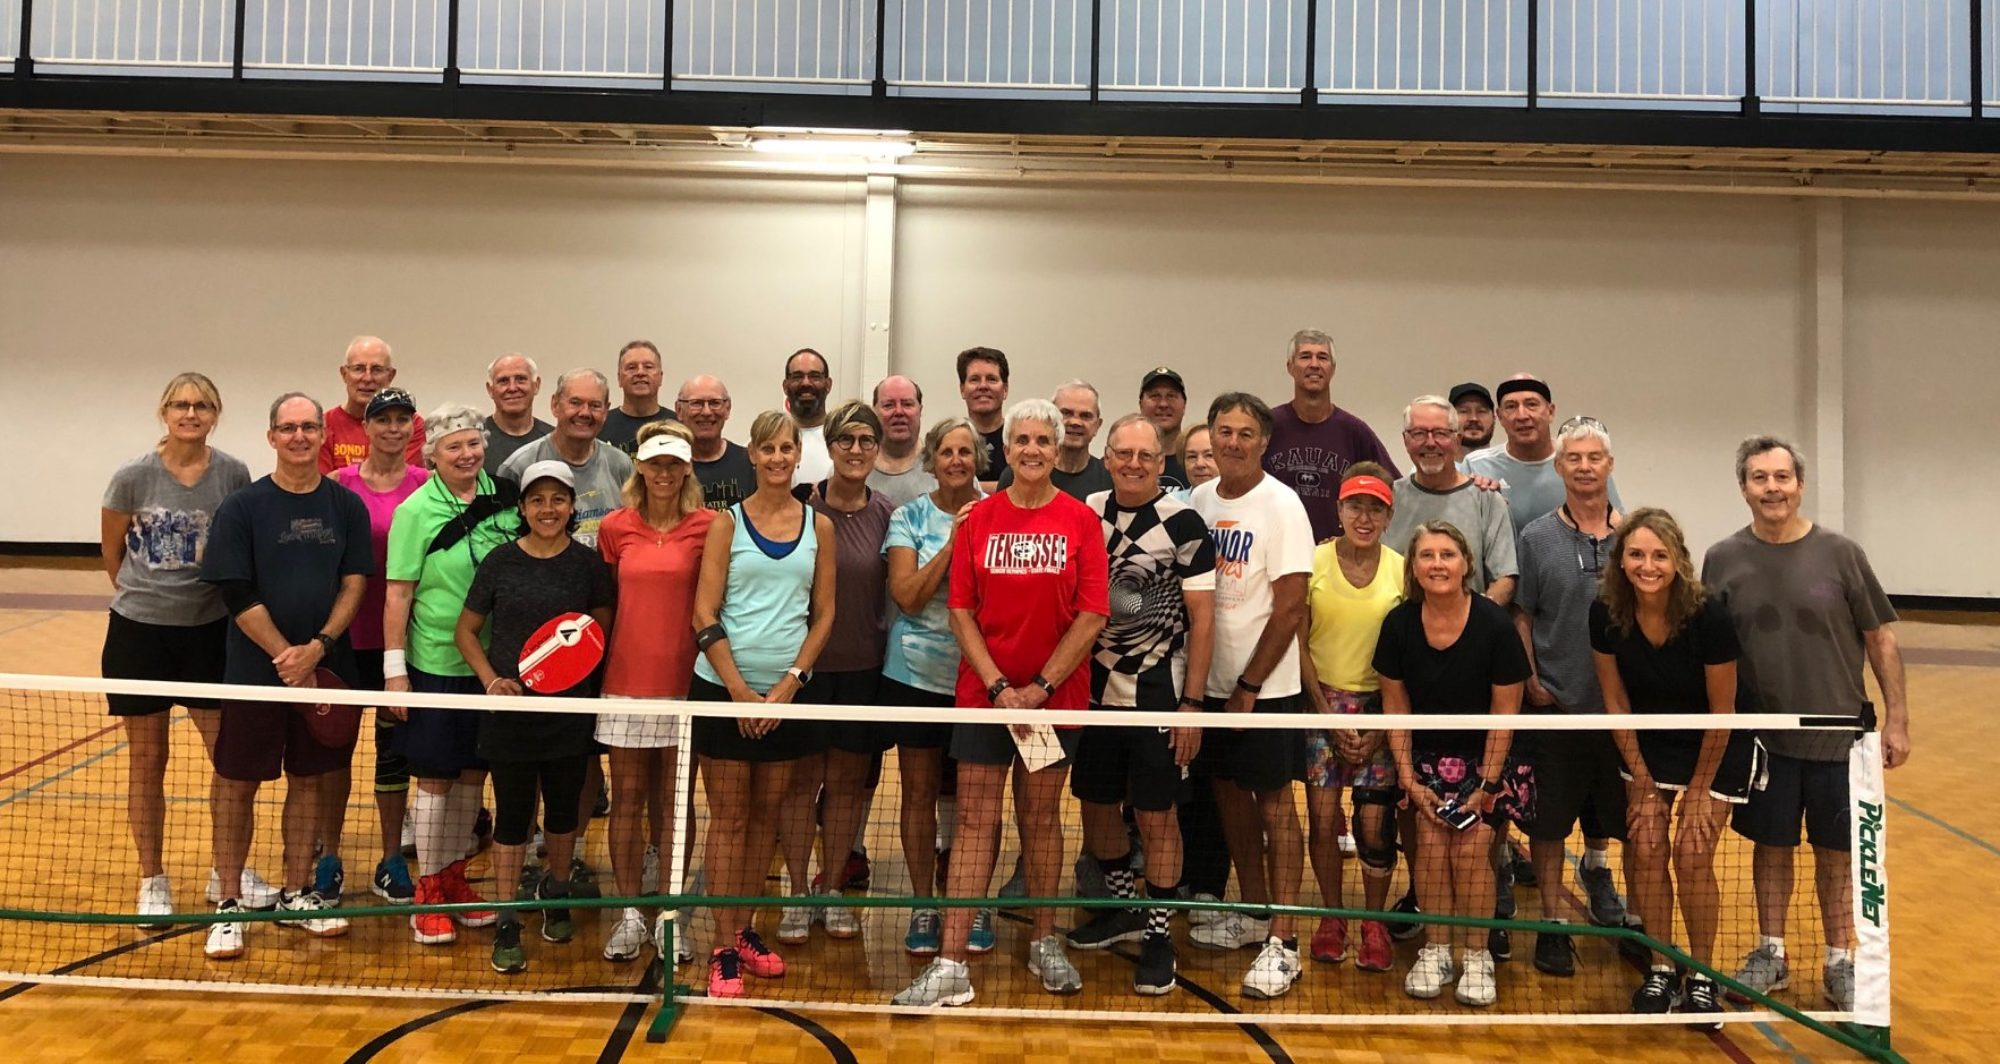 All Things Pickleball in Franklin, TN